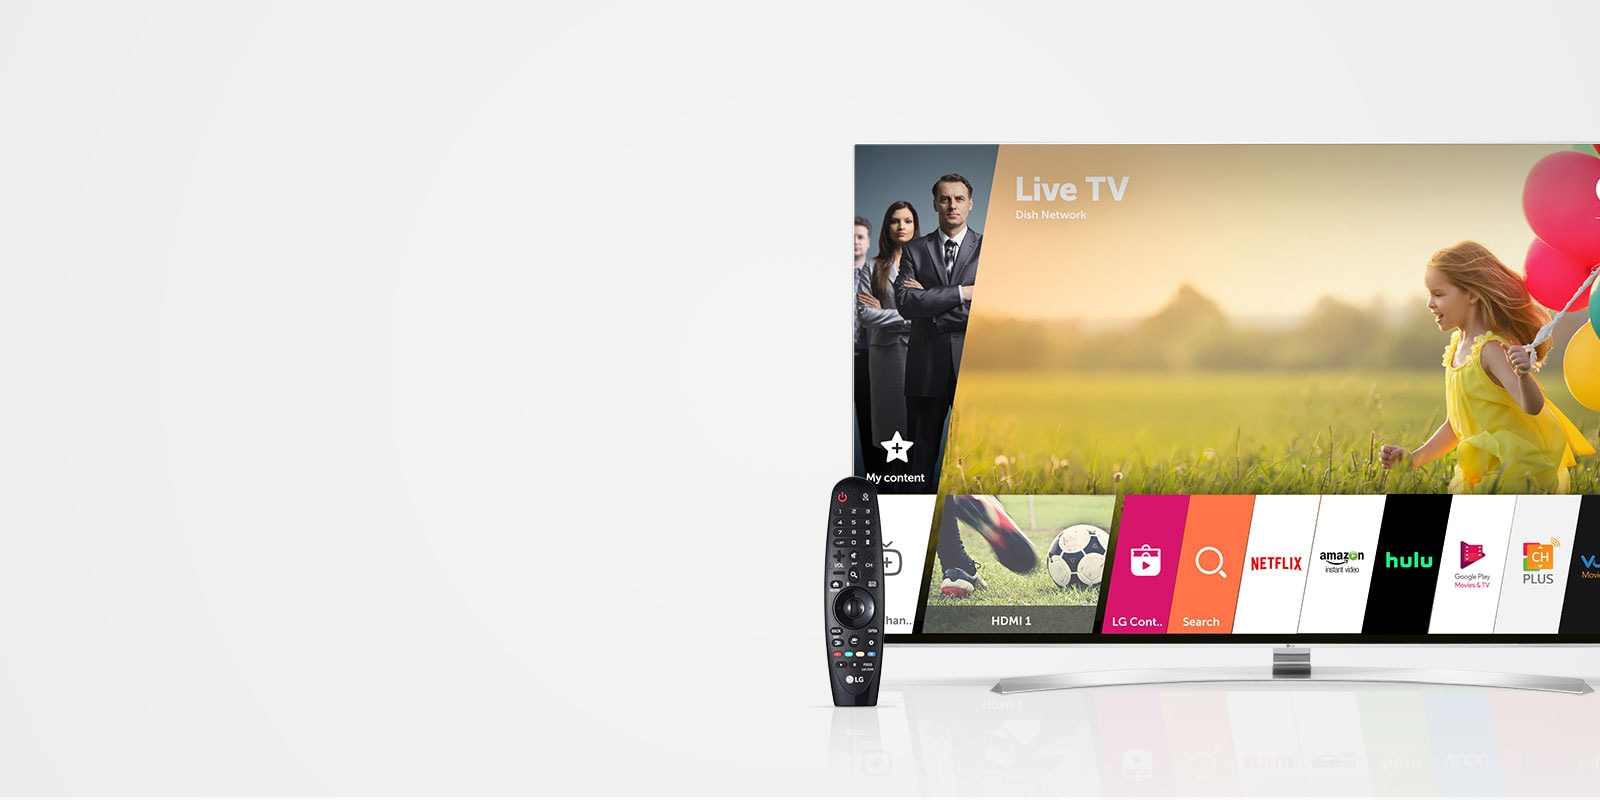 LG Smart TV Connections: Wi-Fi, Miracast, Bluetooth & More